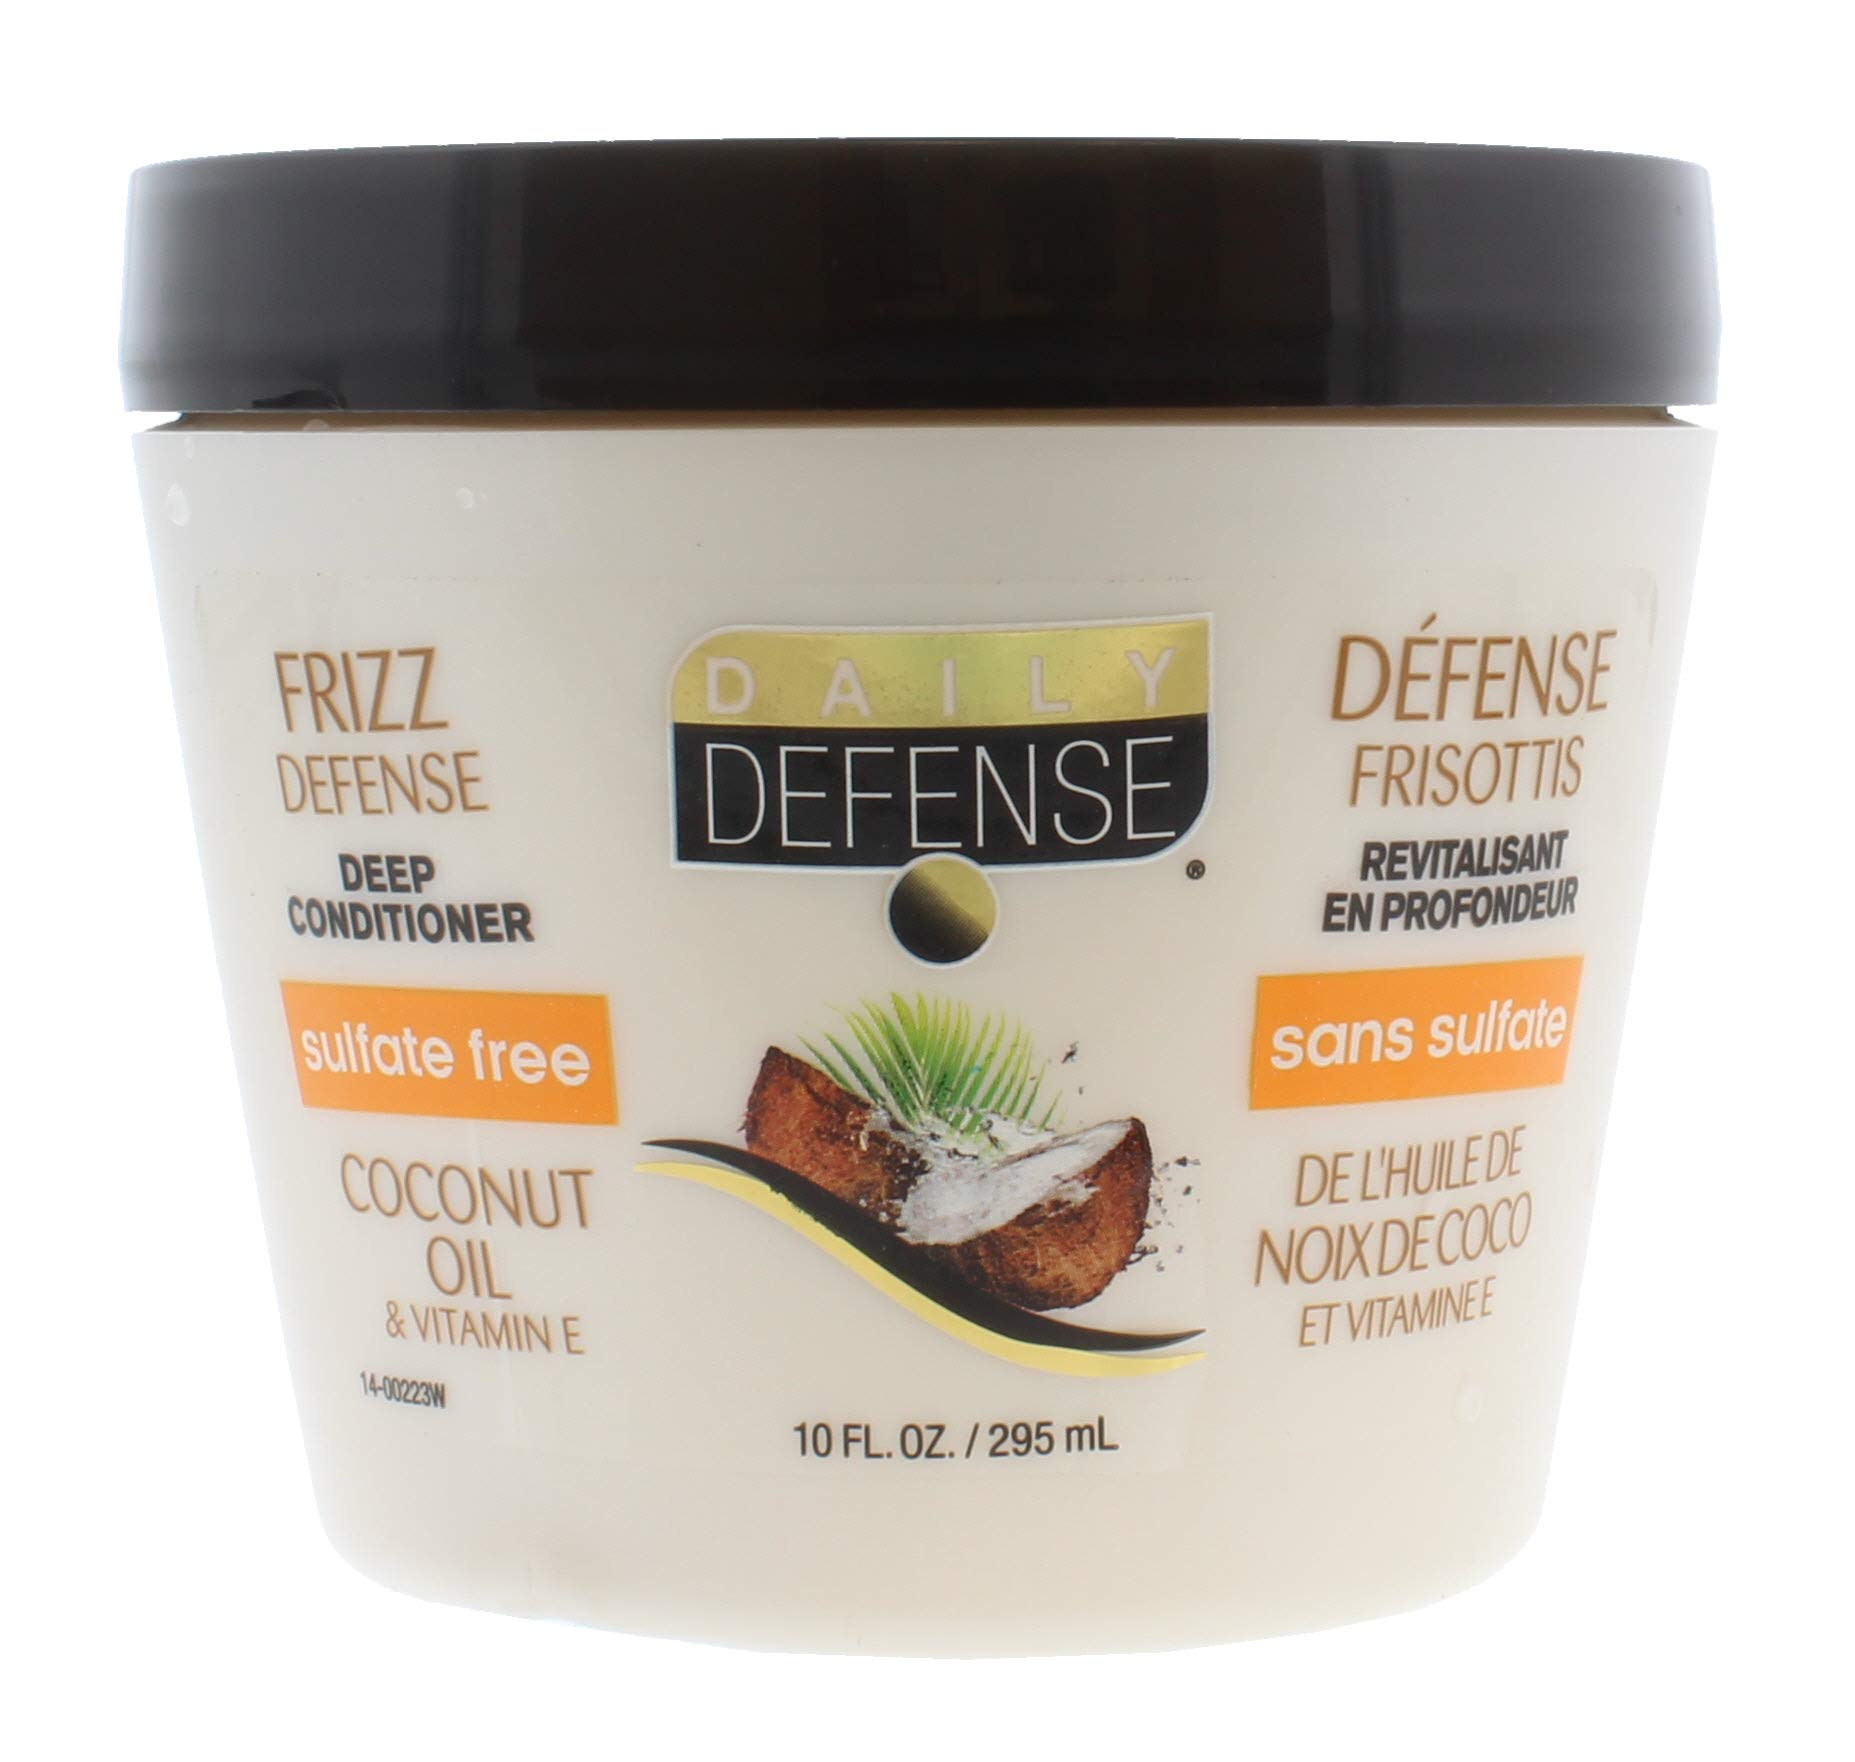 Daily defense 3 minute hair conditioner coconut oil 10 fluid ounce